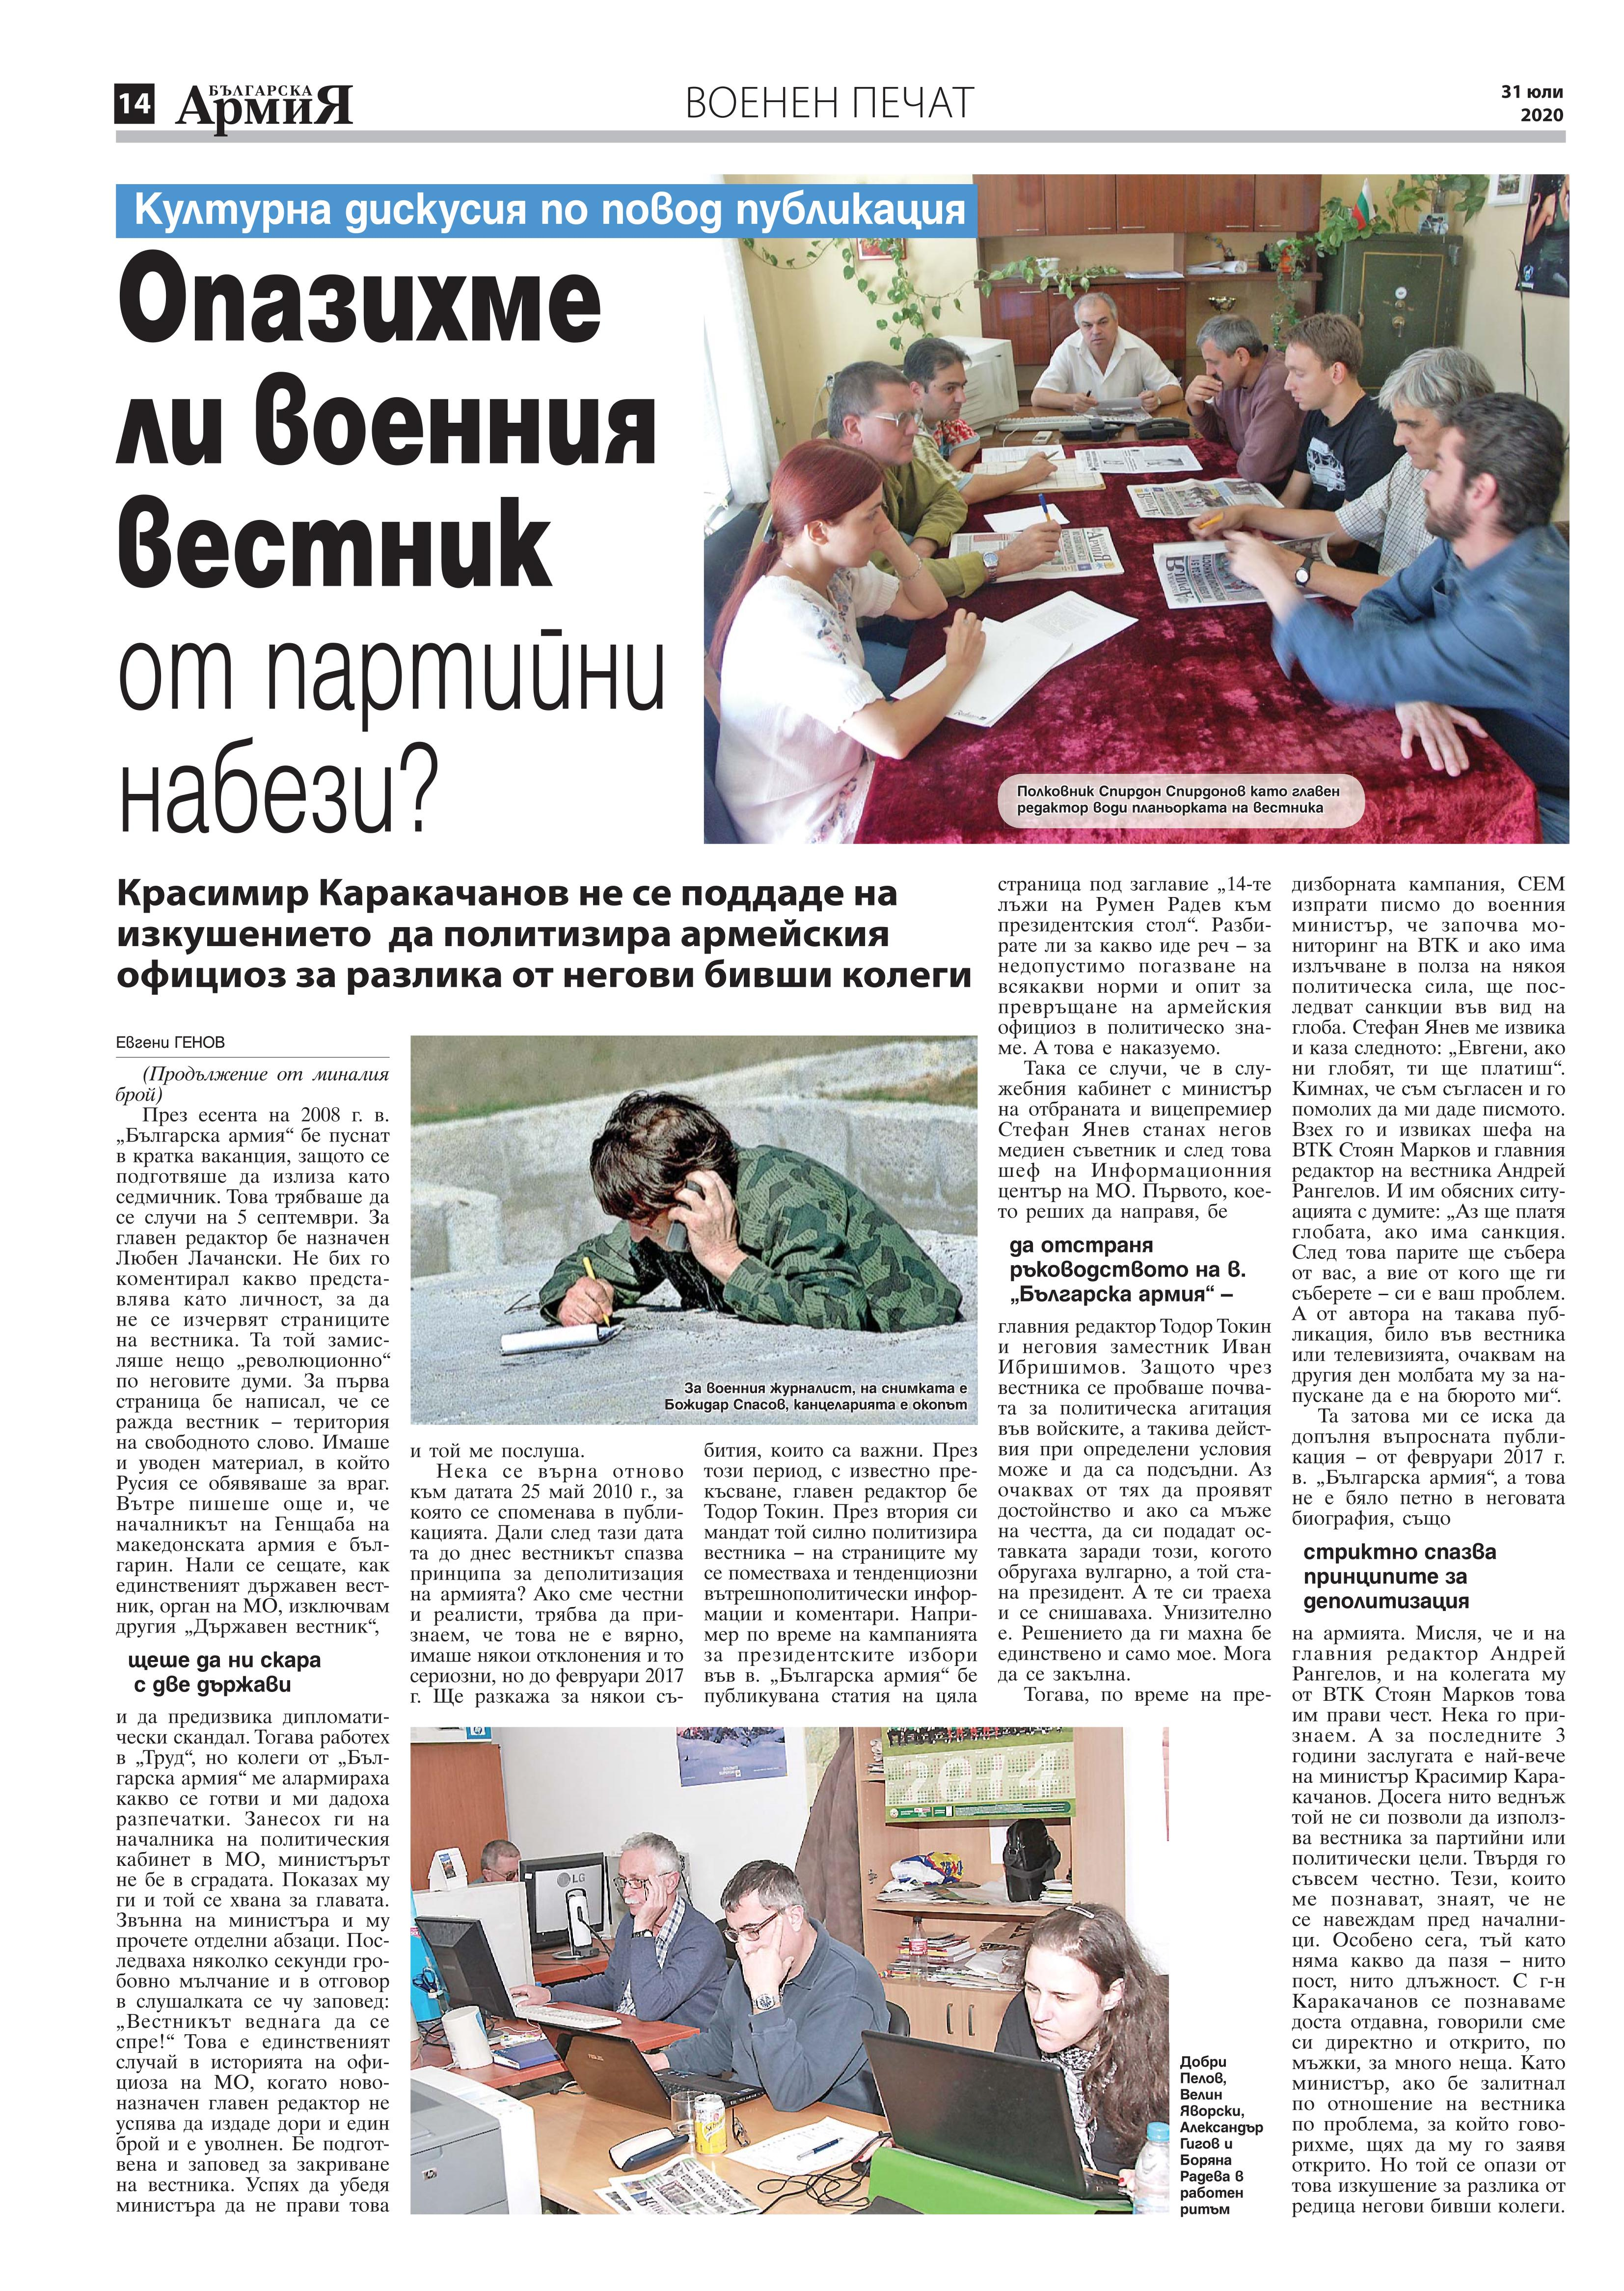 https://armymedia.bg/wp-content/uploads/2015/06/14.page1_-148.jpg